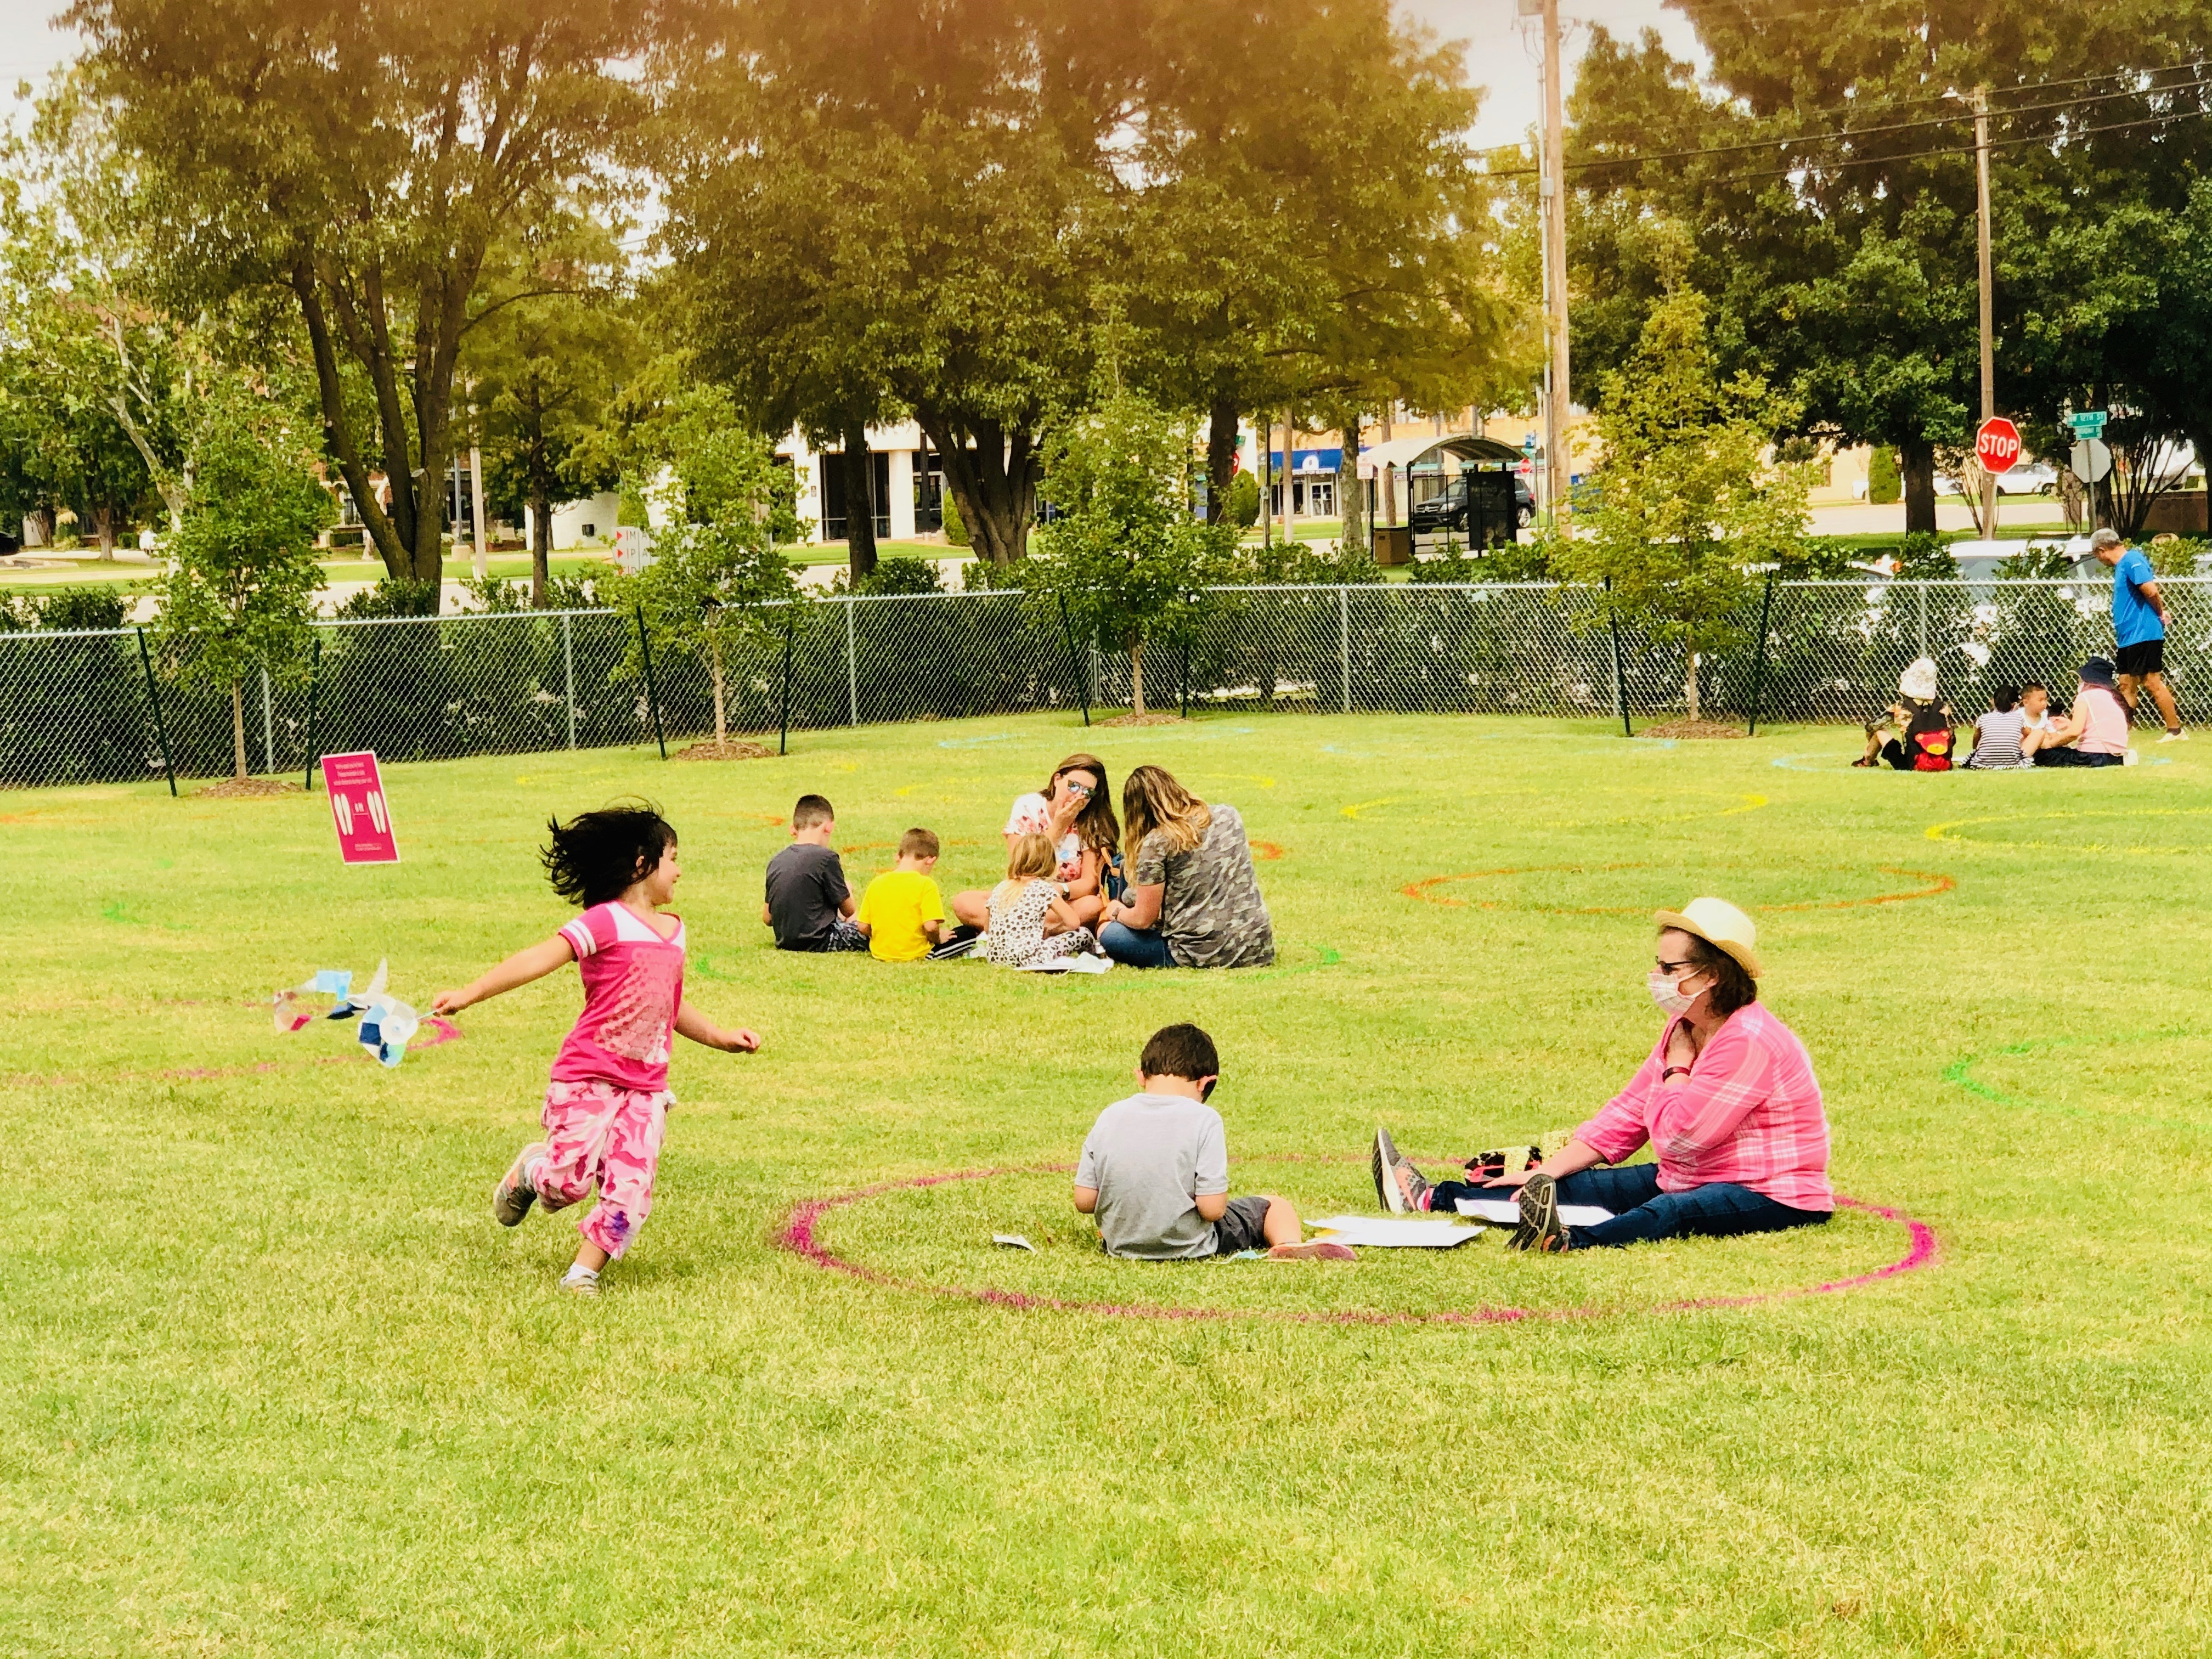 Families enjoy outdoor activities, sitting in socially distanced circles marked on a green lawn